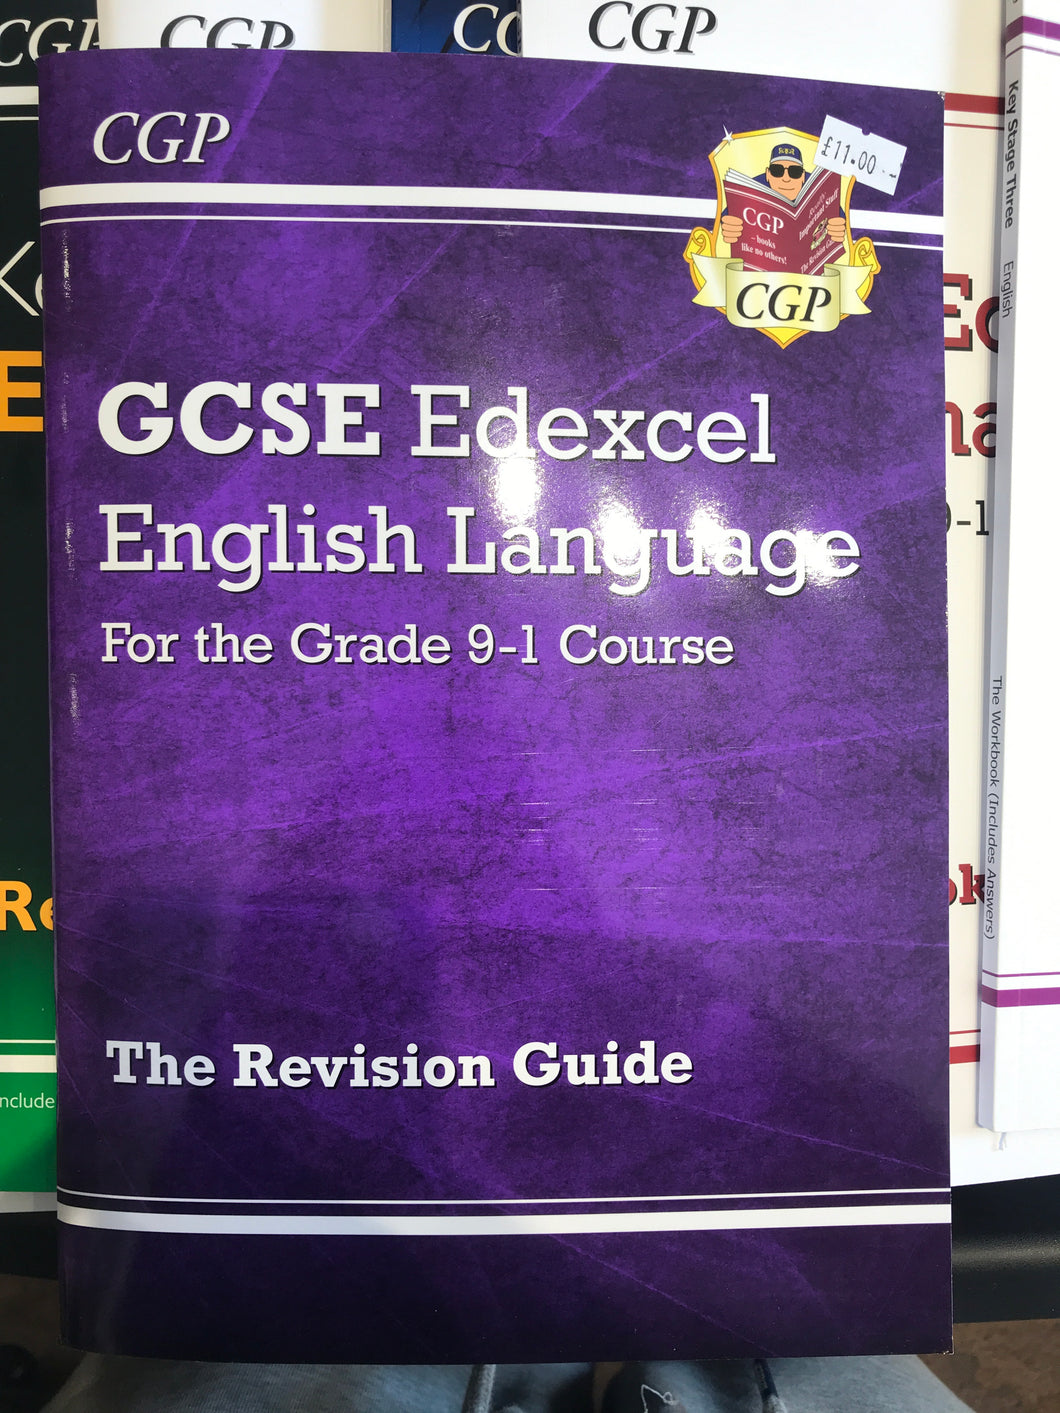 GCSE Edexel English 9-1 - First Class Learning Bradford